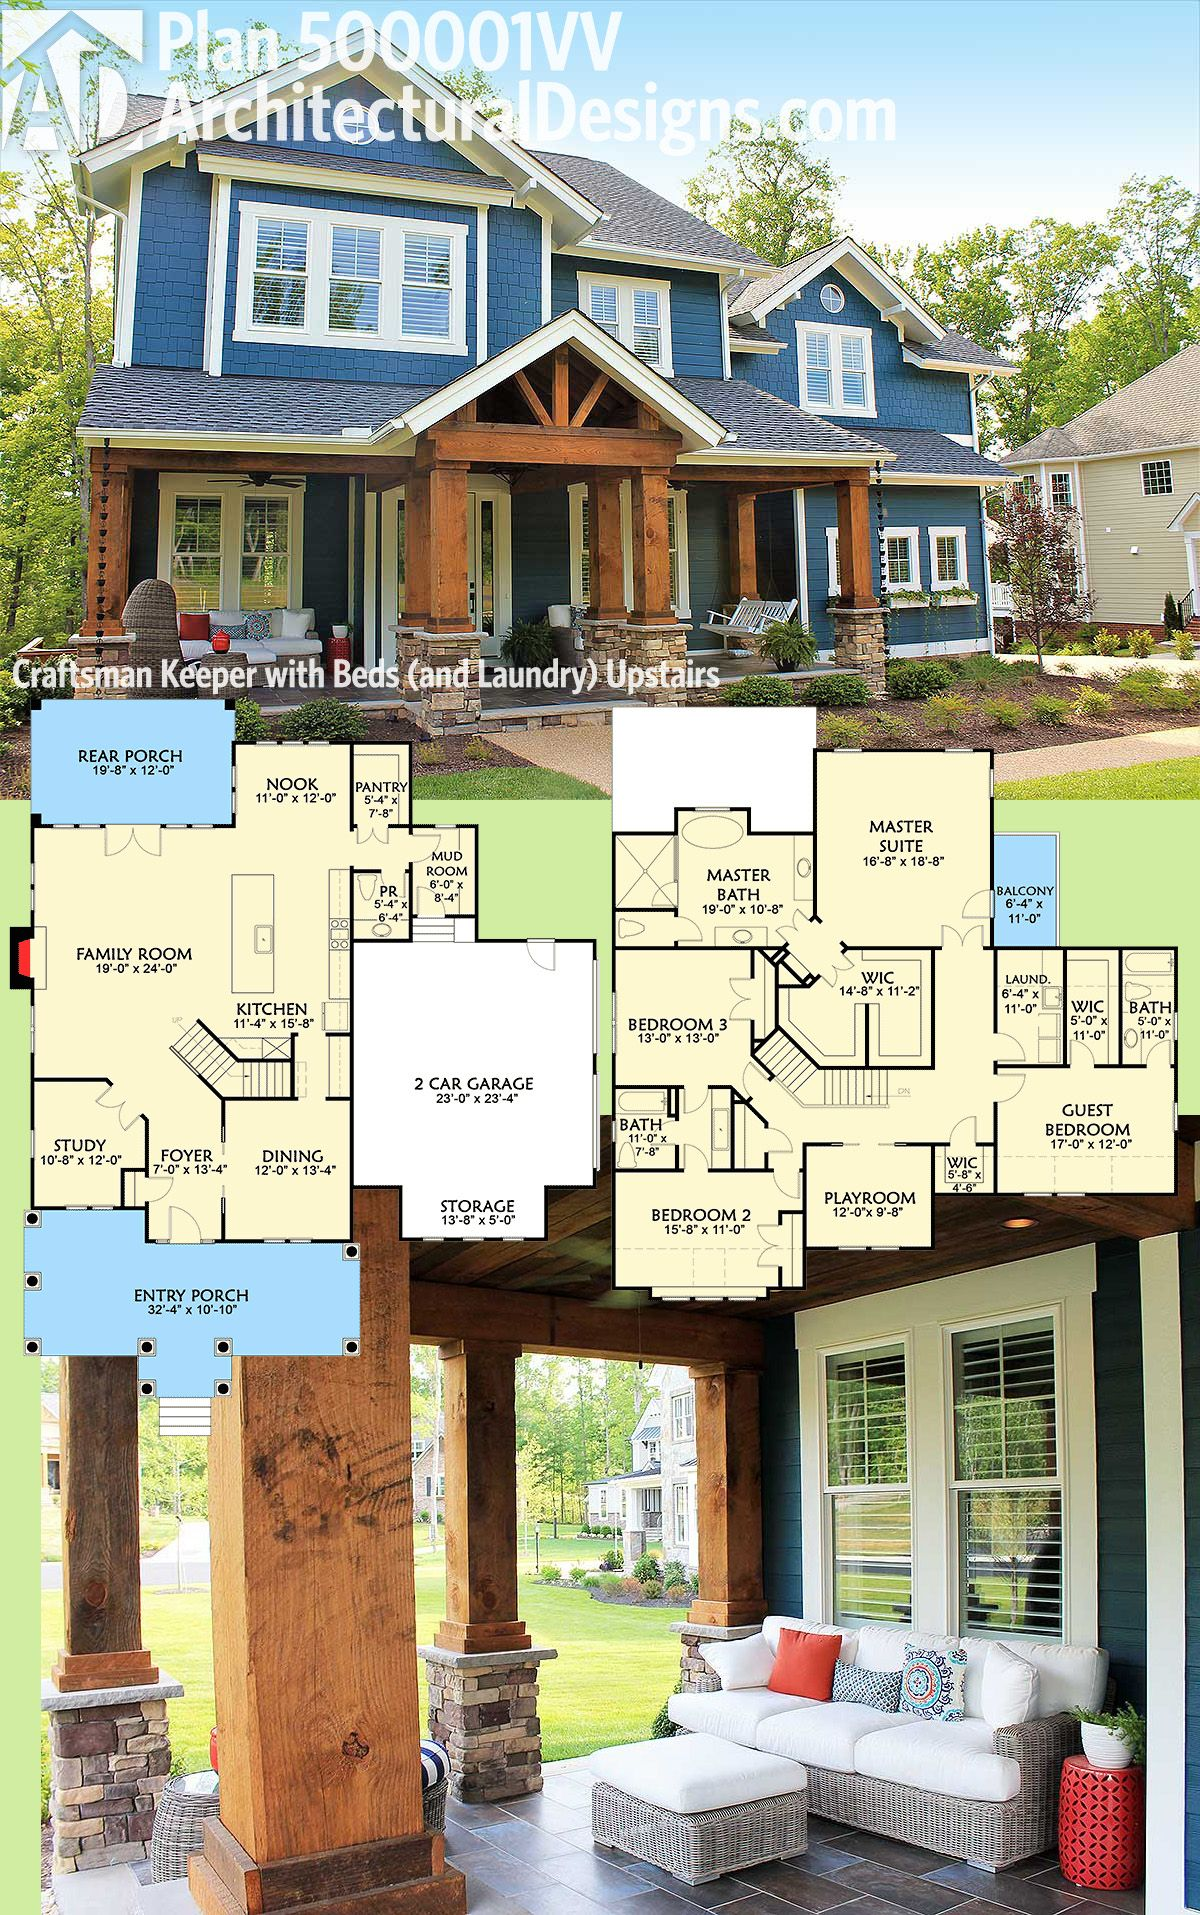 Explore Family House Plans, Simple House Plans, And More!